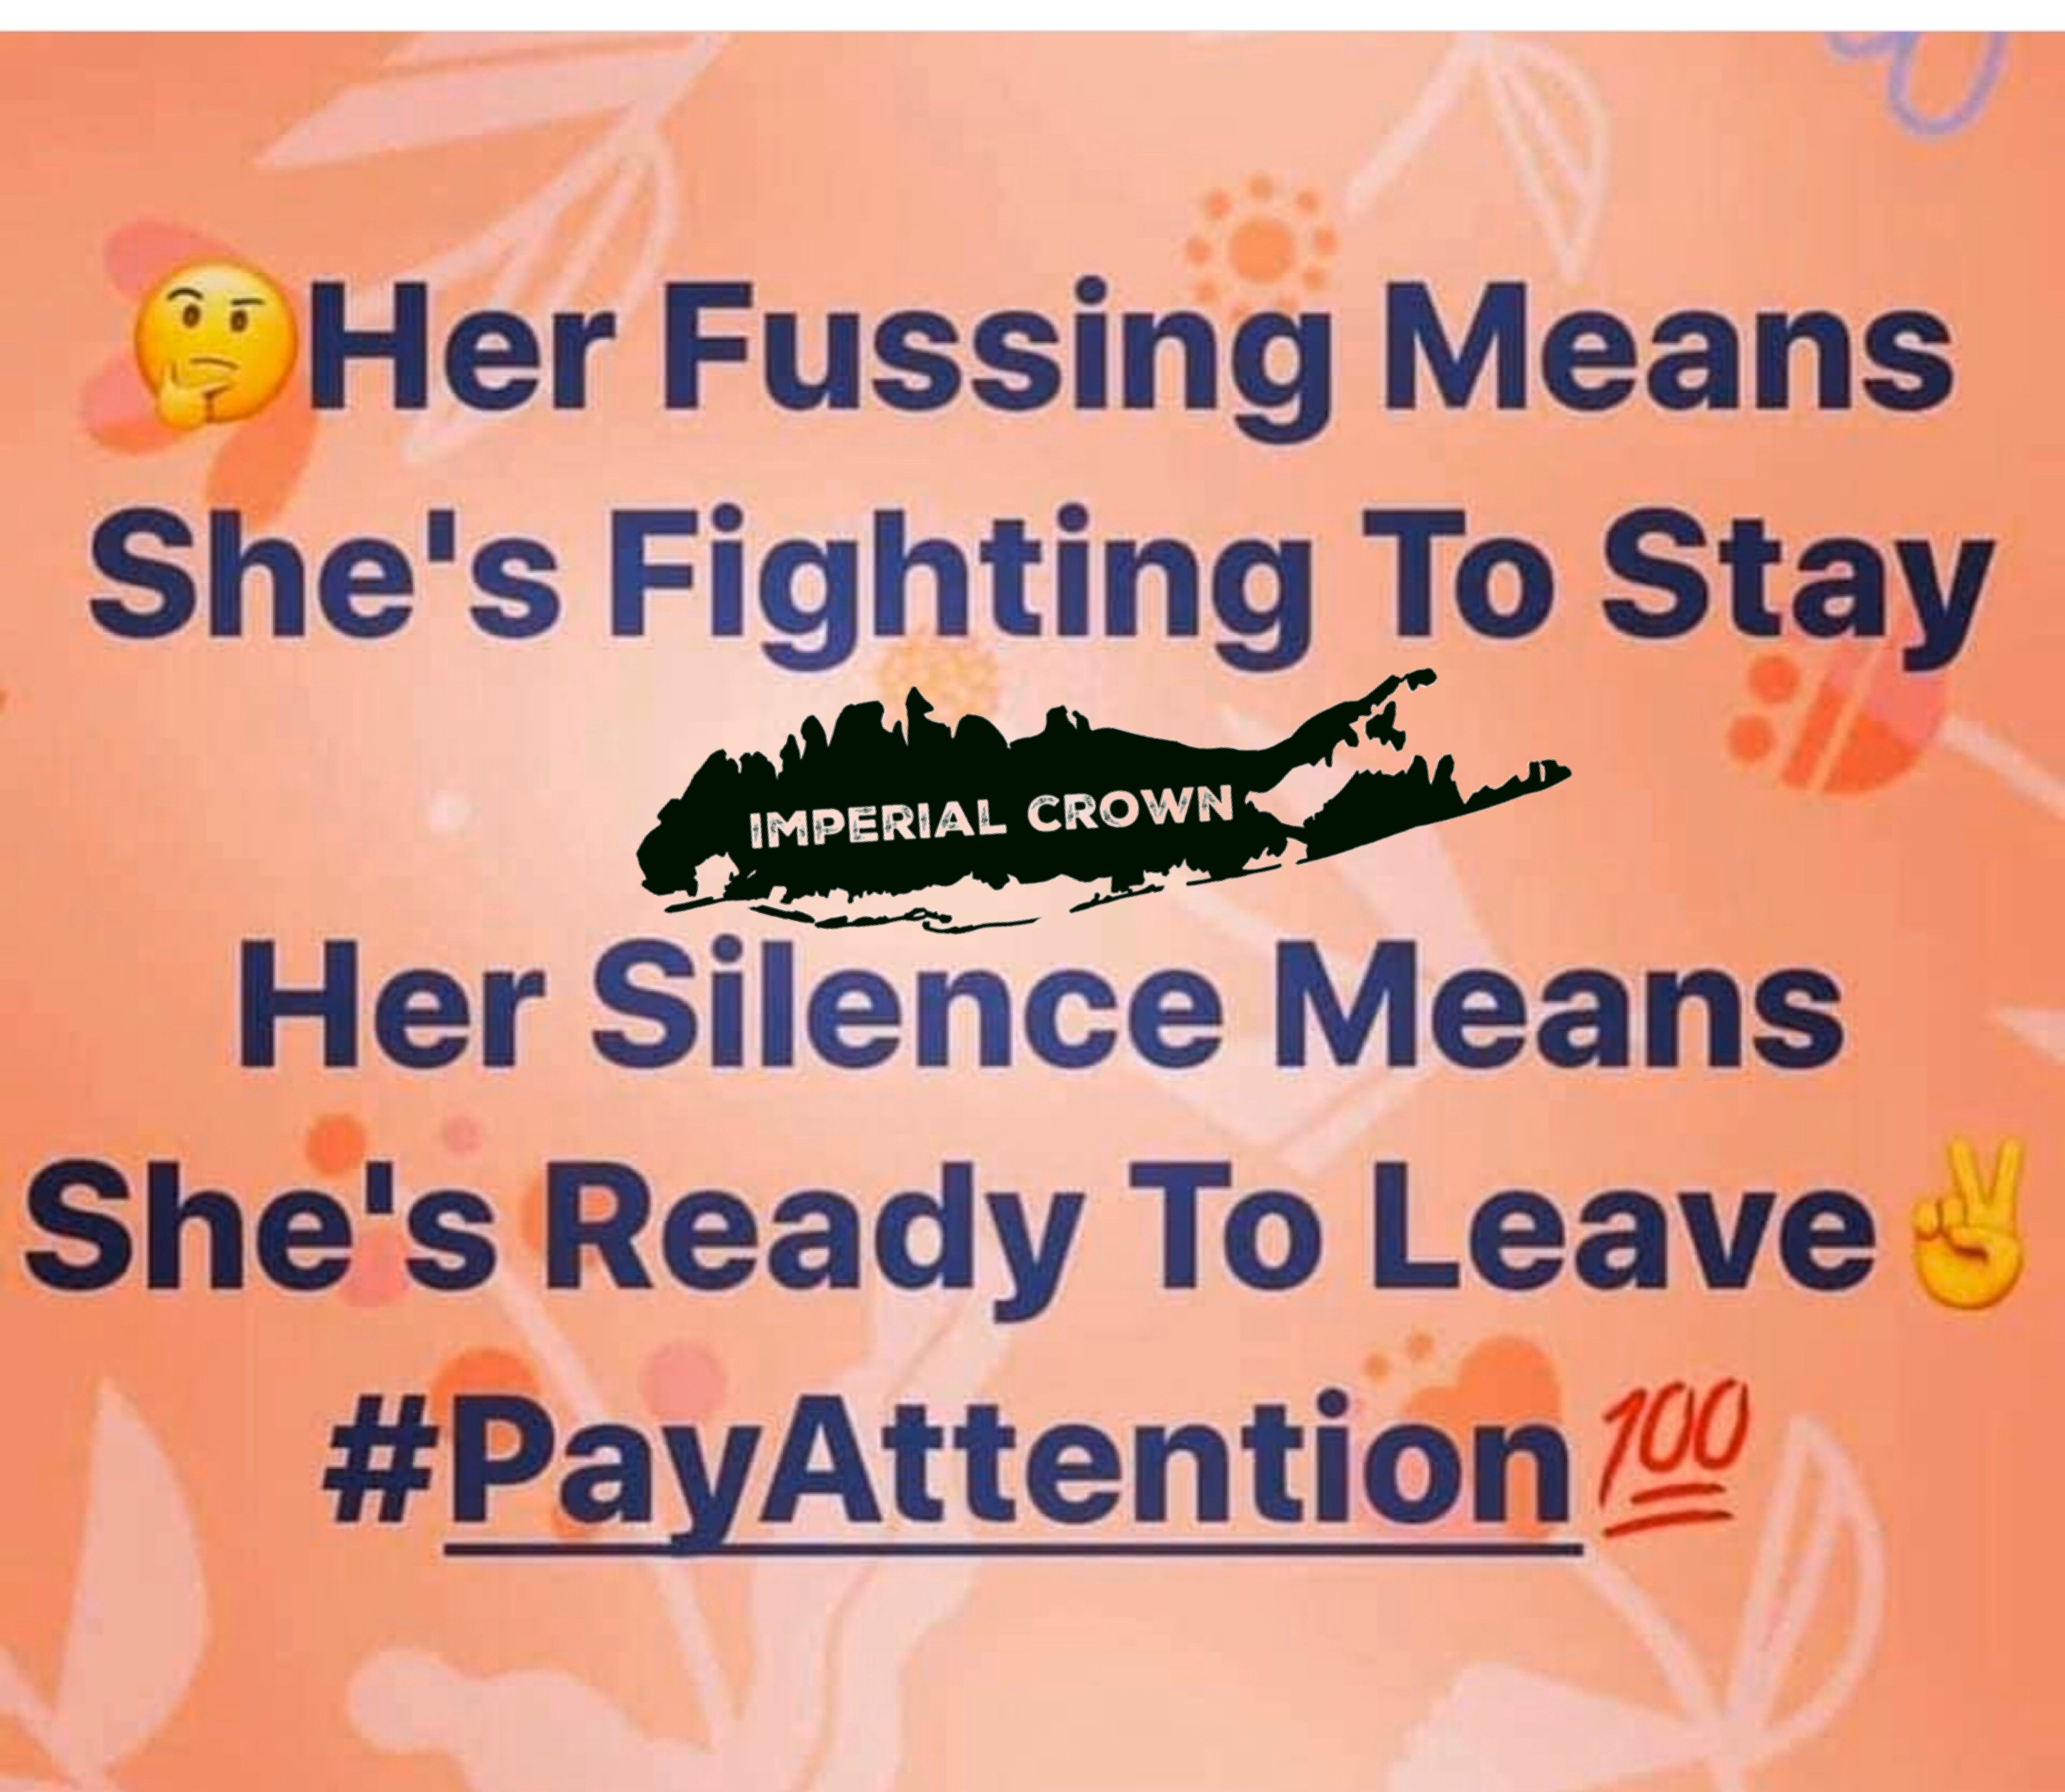 Her fussing means she fighting to stay, her silence means she's ready to leave